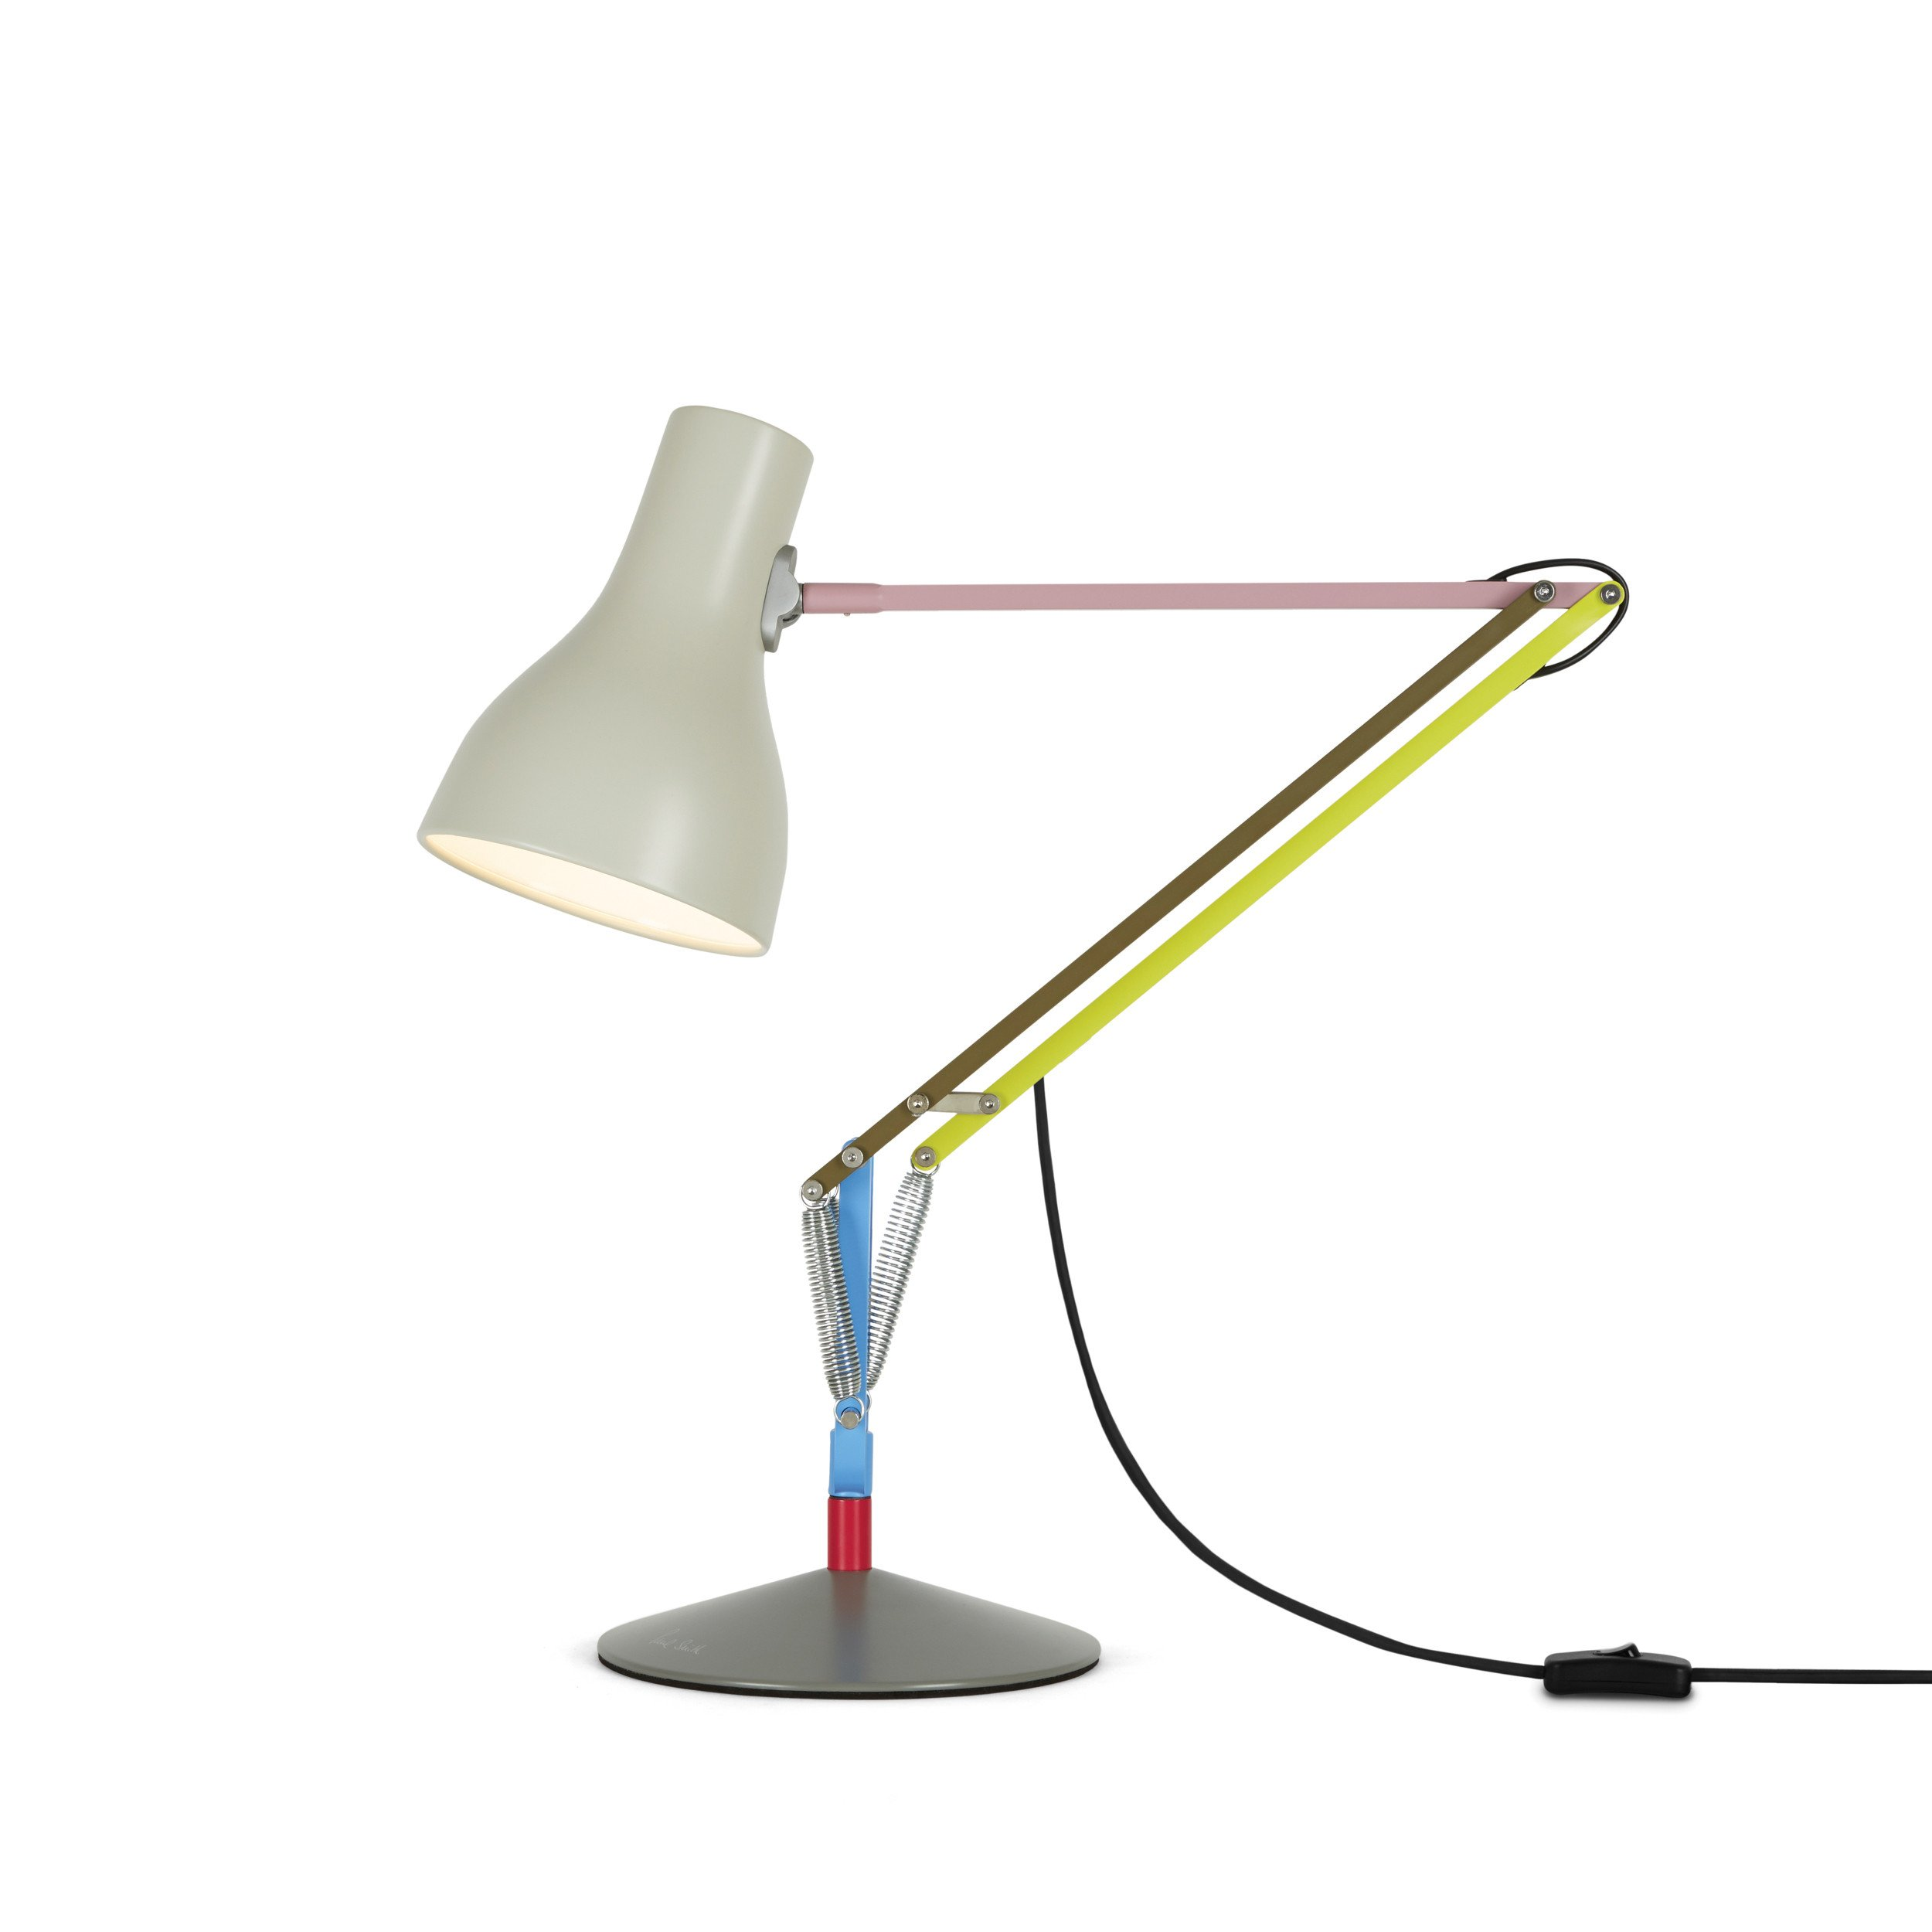 2500x2500 Type 75 Desk Lamp Paul Smith Edition One By Kenneth Grange